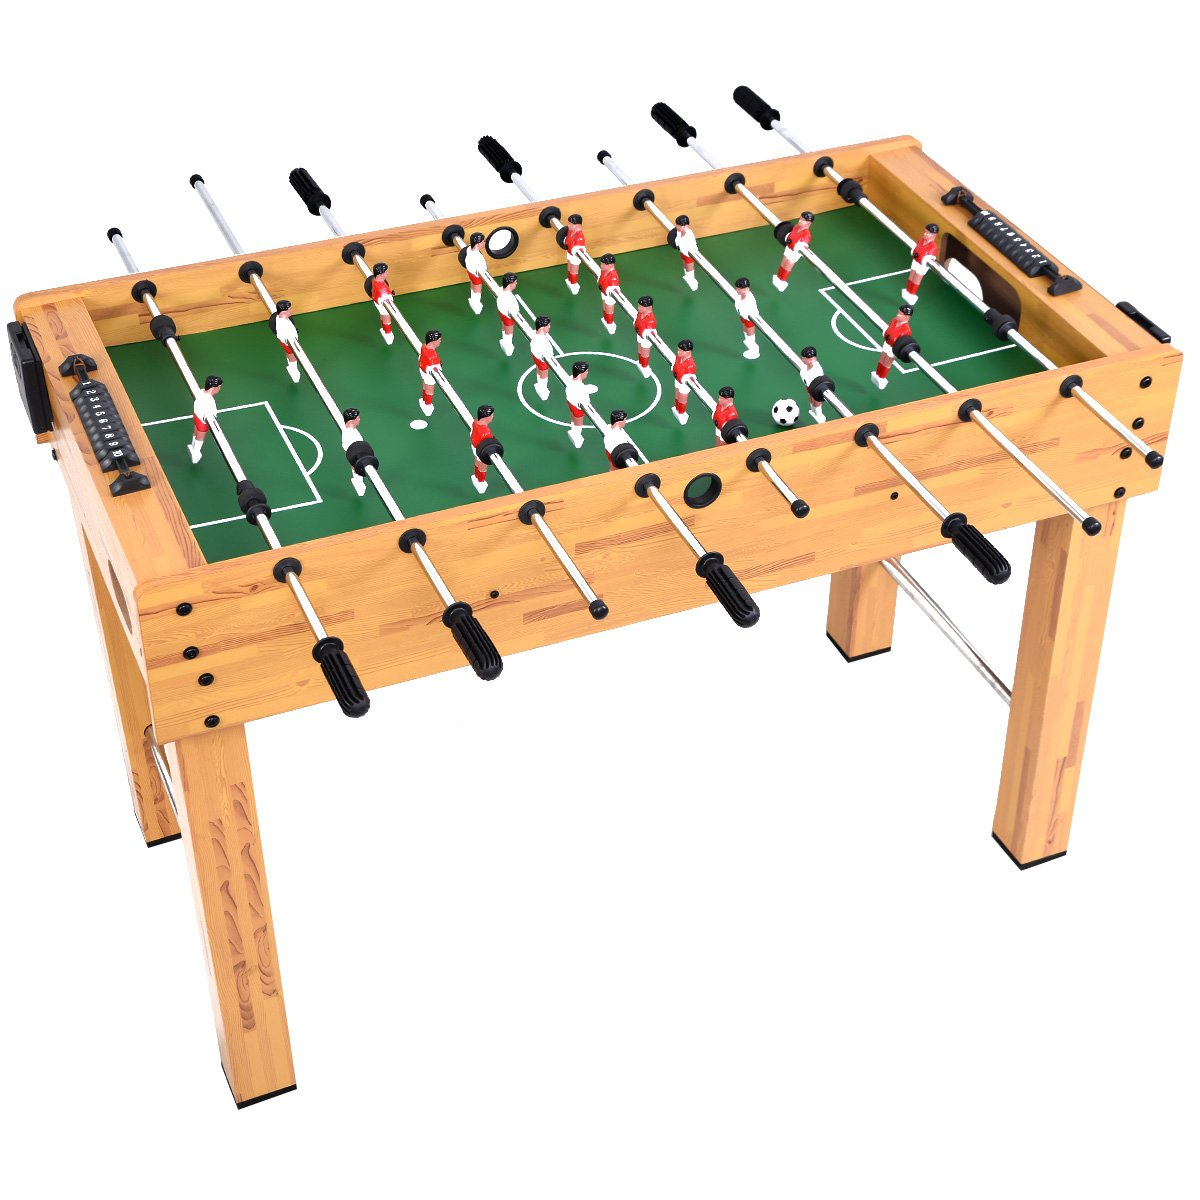 GYMAX 48'' Foosball Table, Indoor Competition Soccer Game Table for Adults Kids Game Room by GYMAX